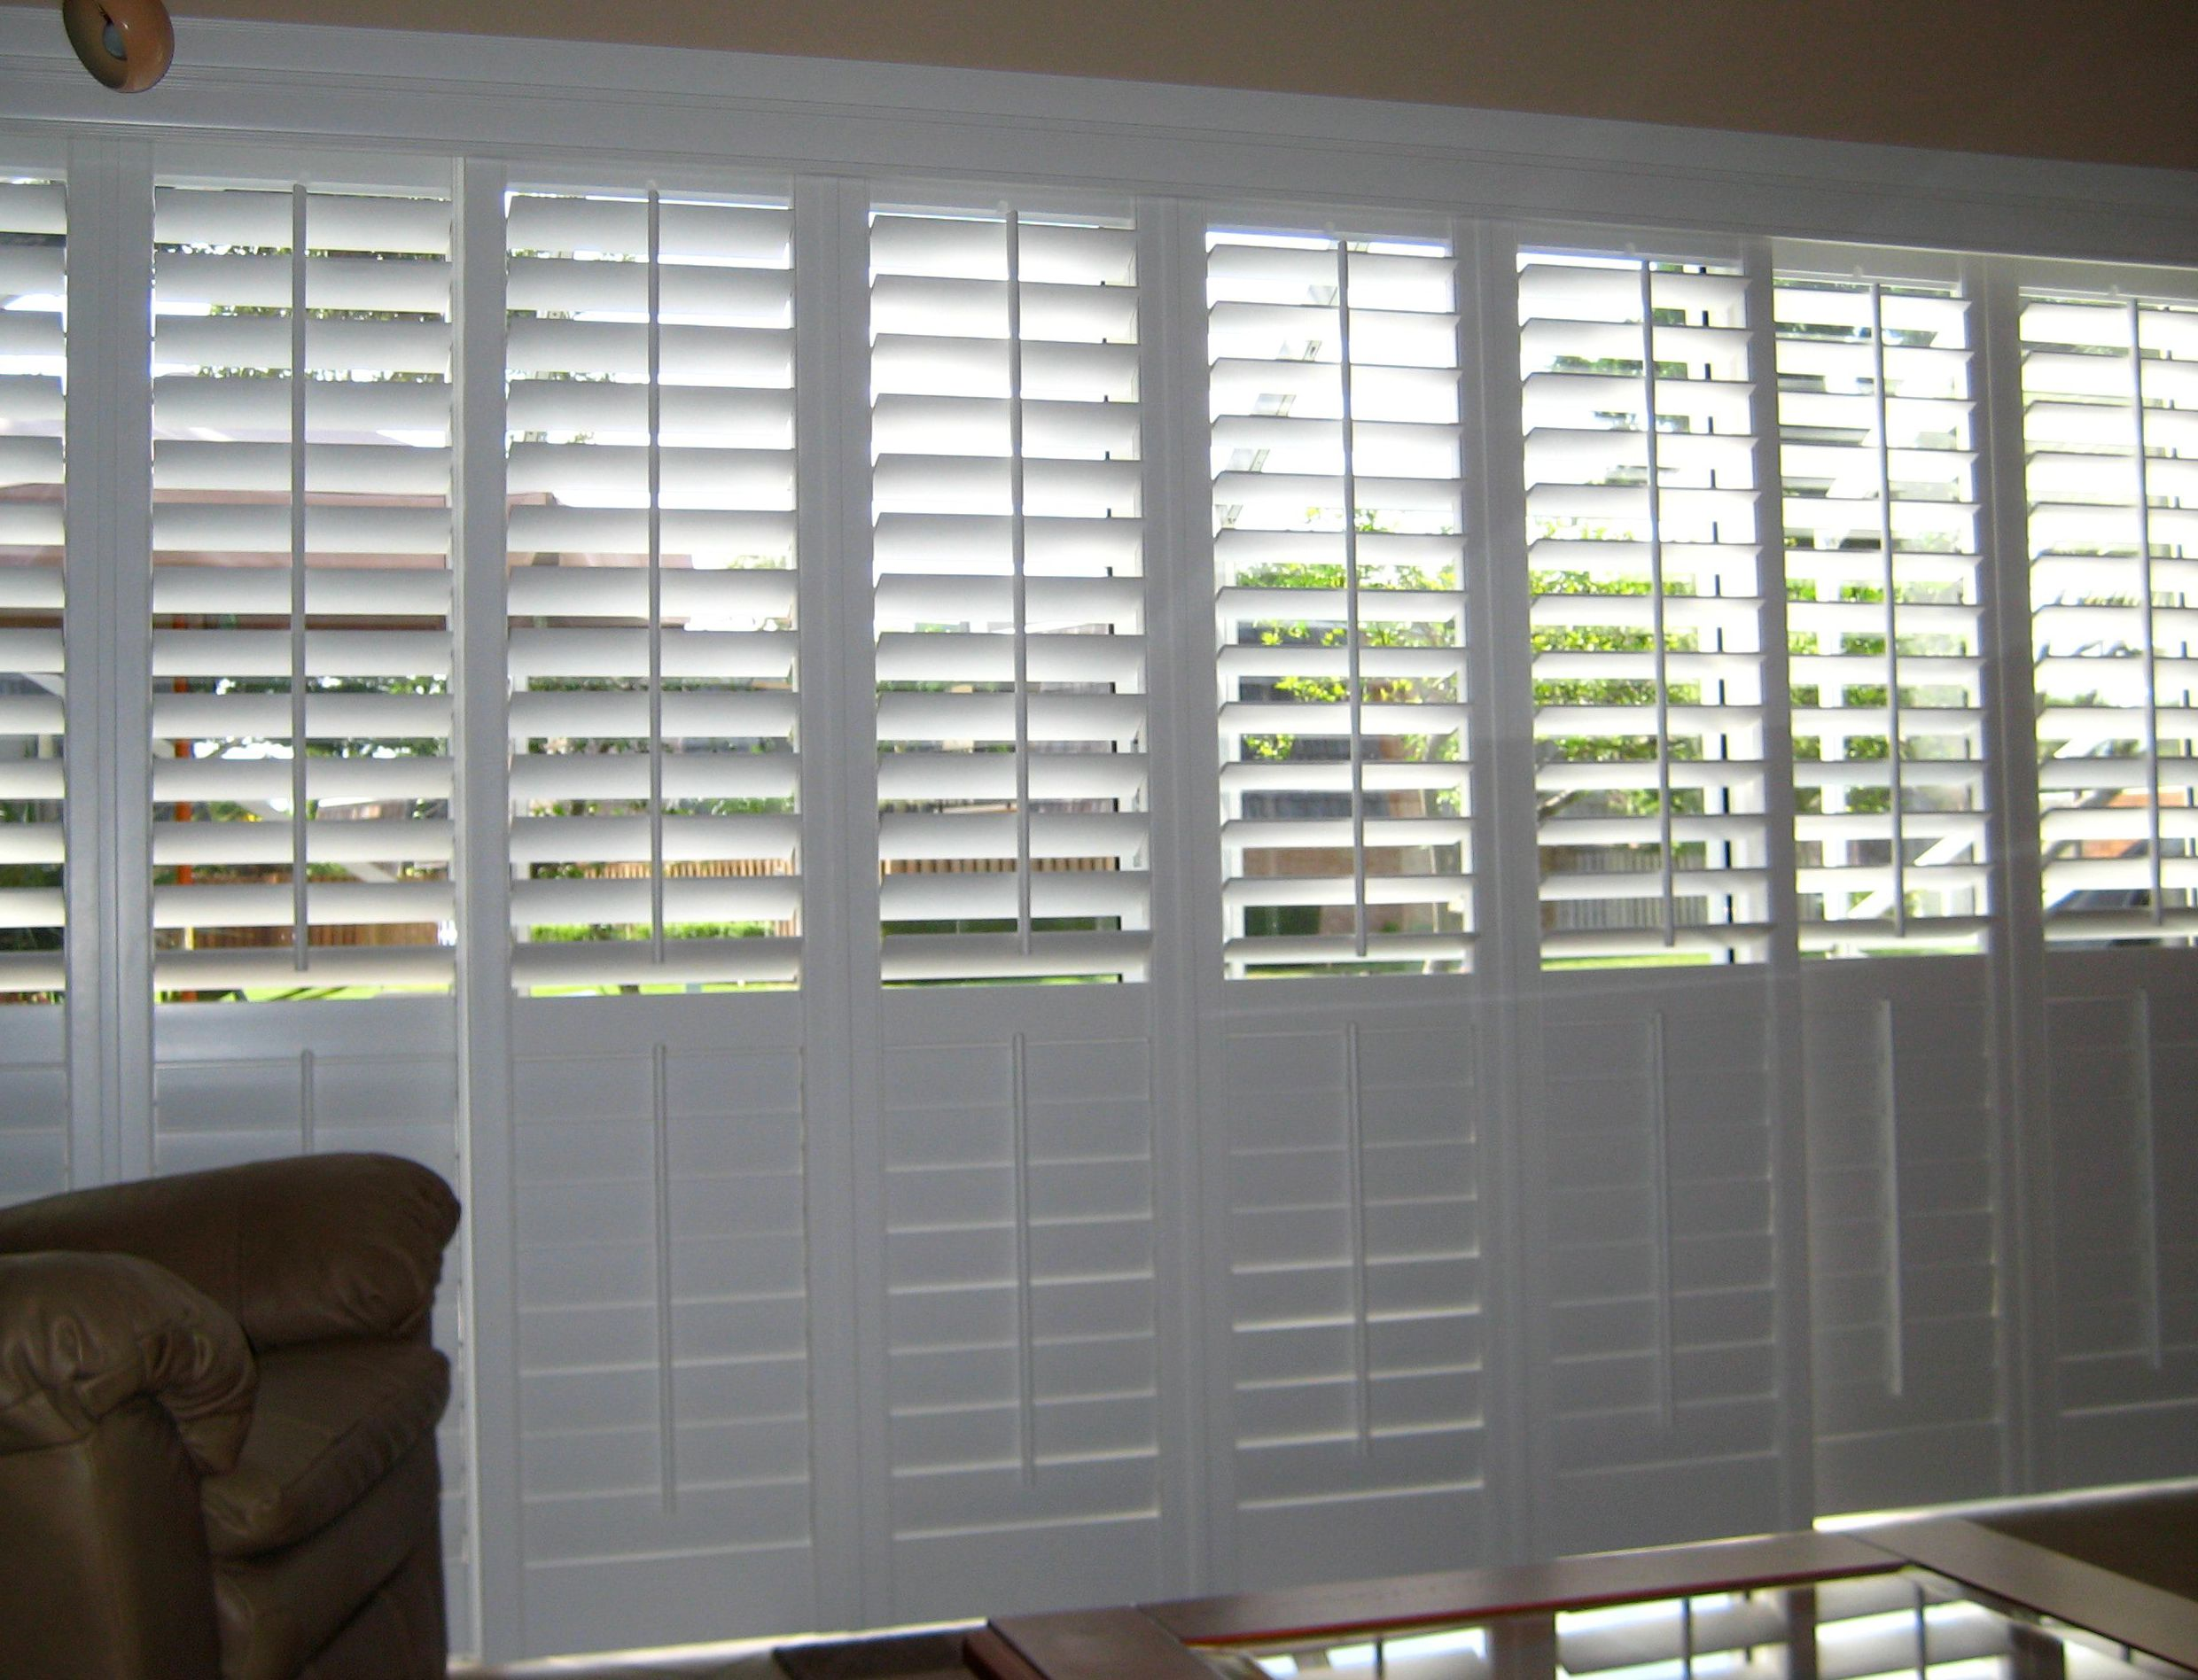 madeinamerica composite so plantation shop to by plantationshutters many interior ways perfectly louver your cover pin windows arched shutters the